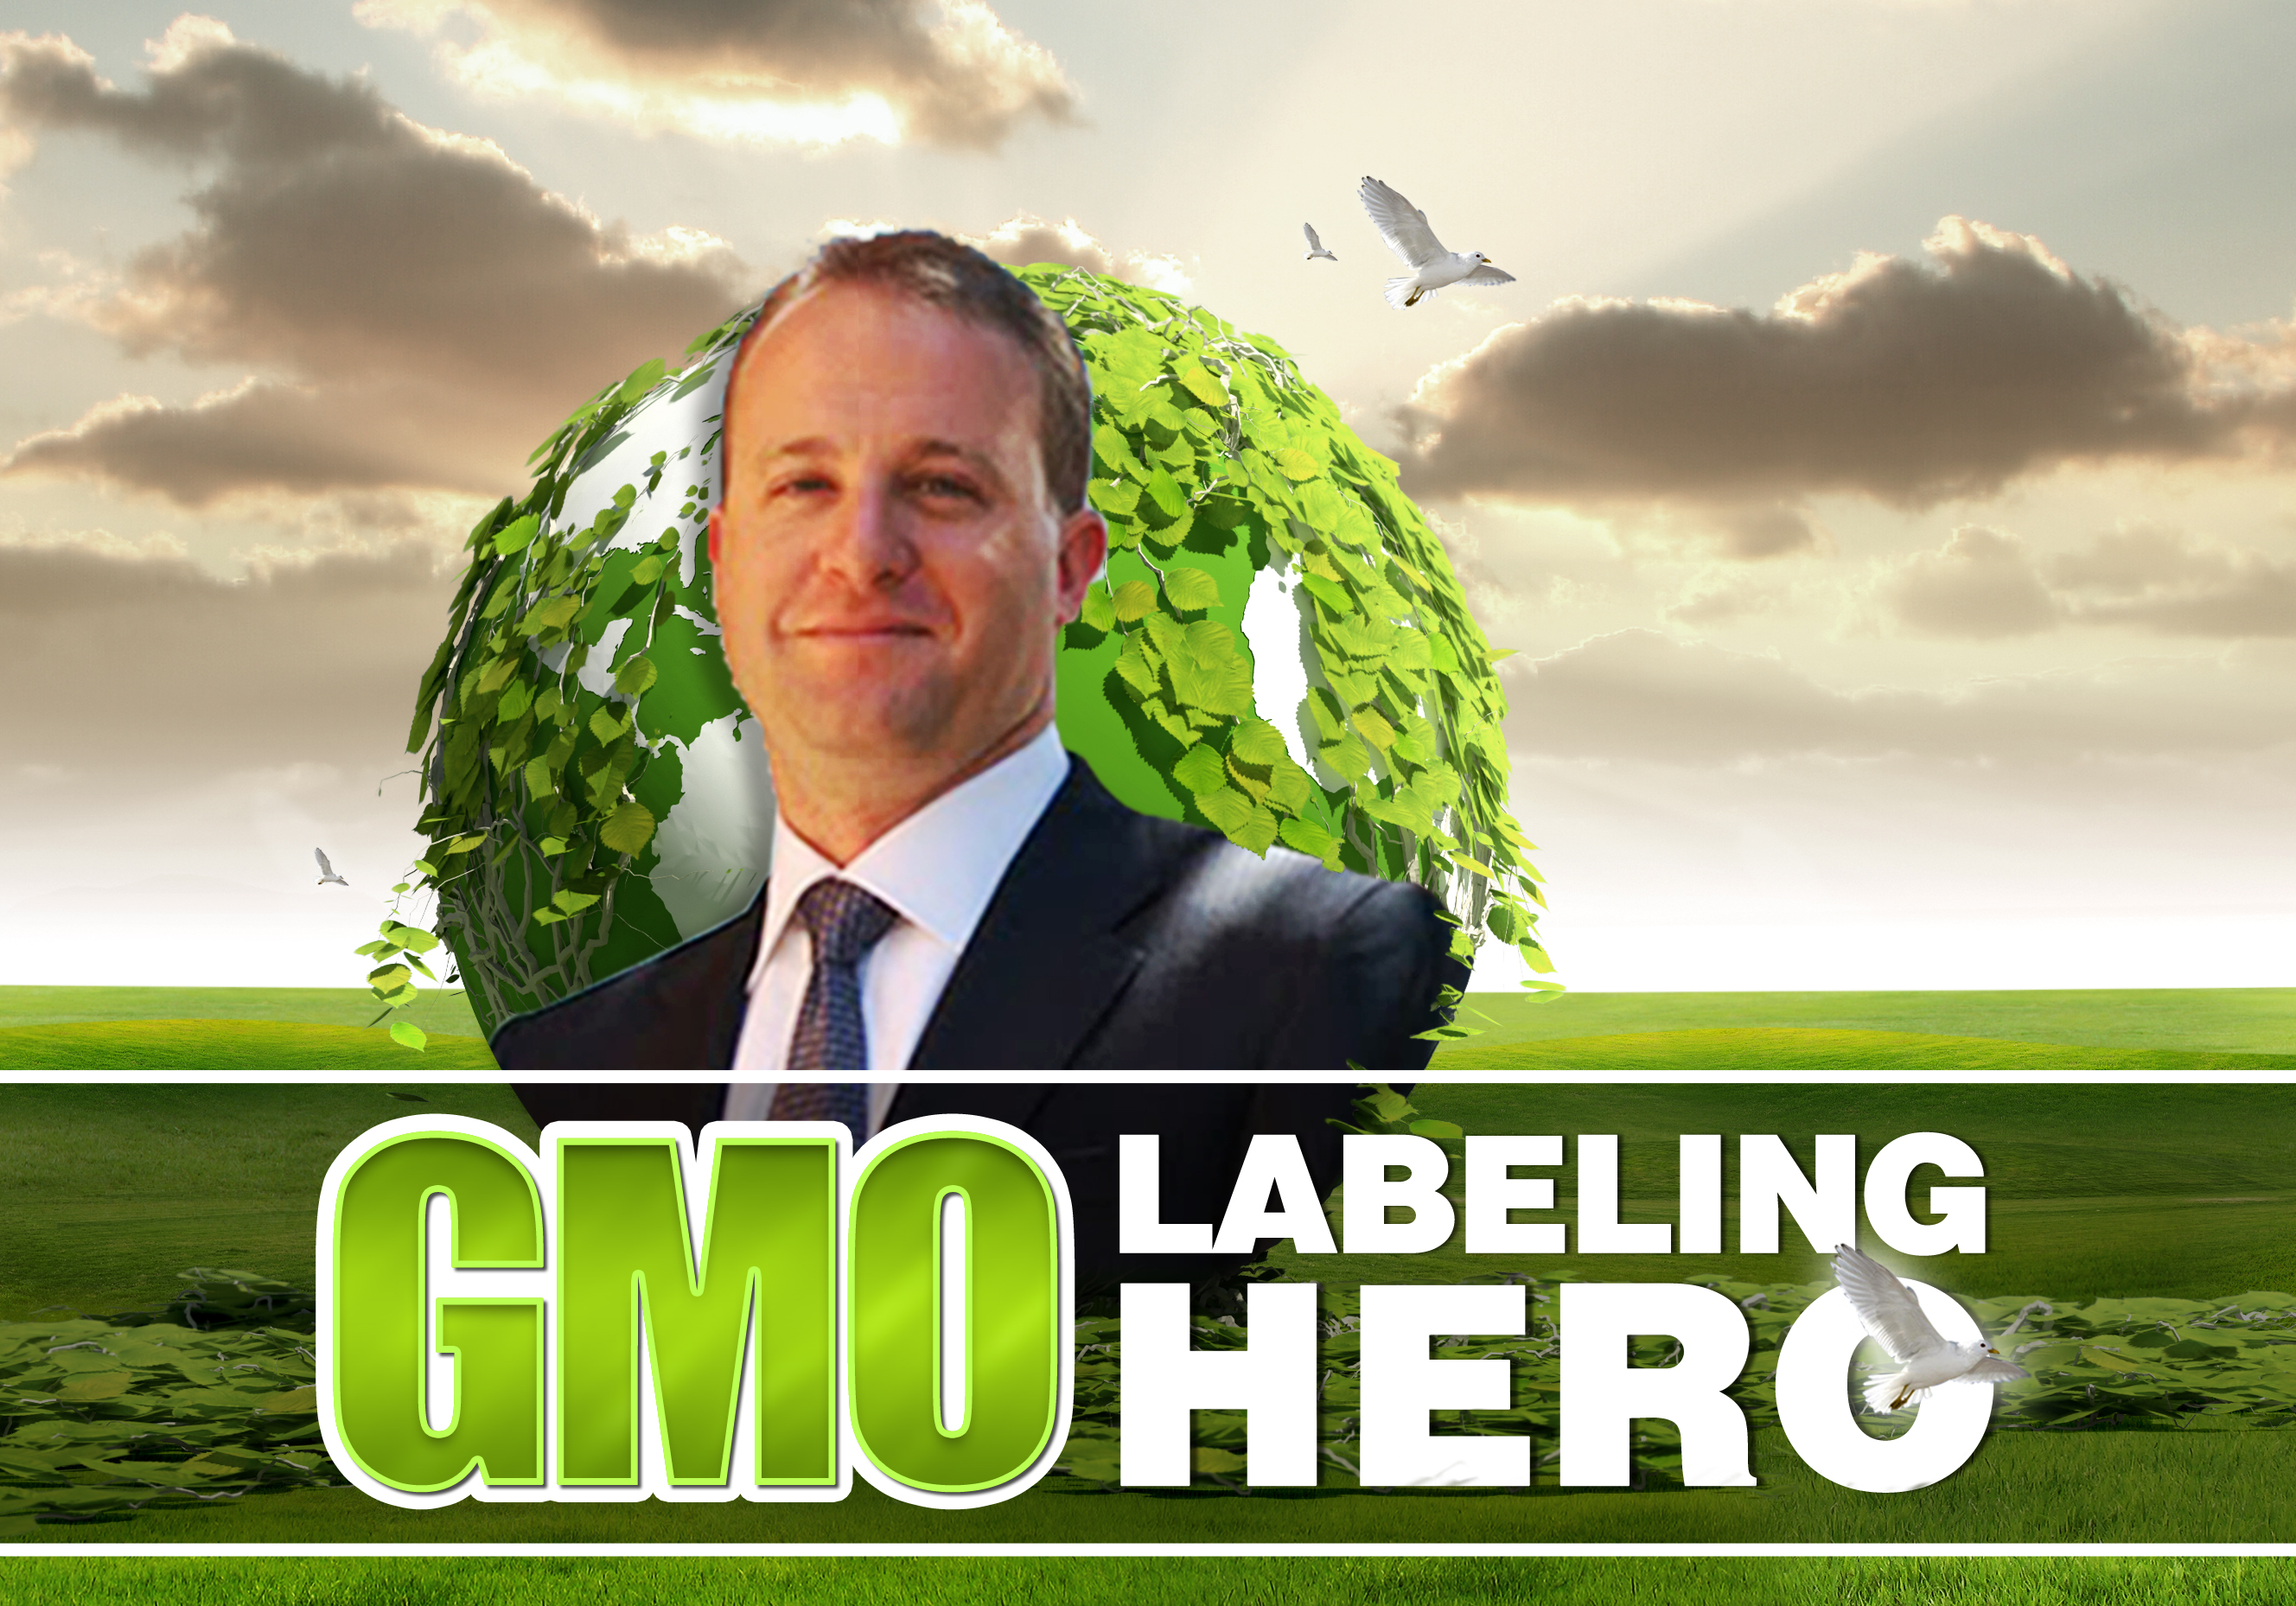 GMO Labeling Hero Jared Polis